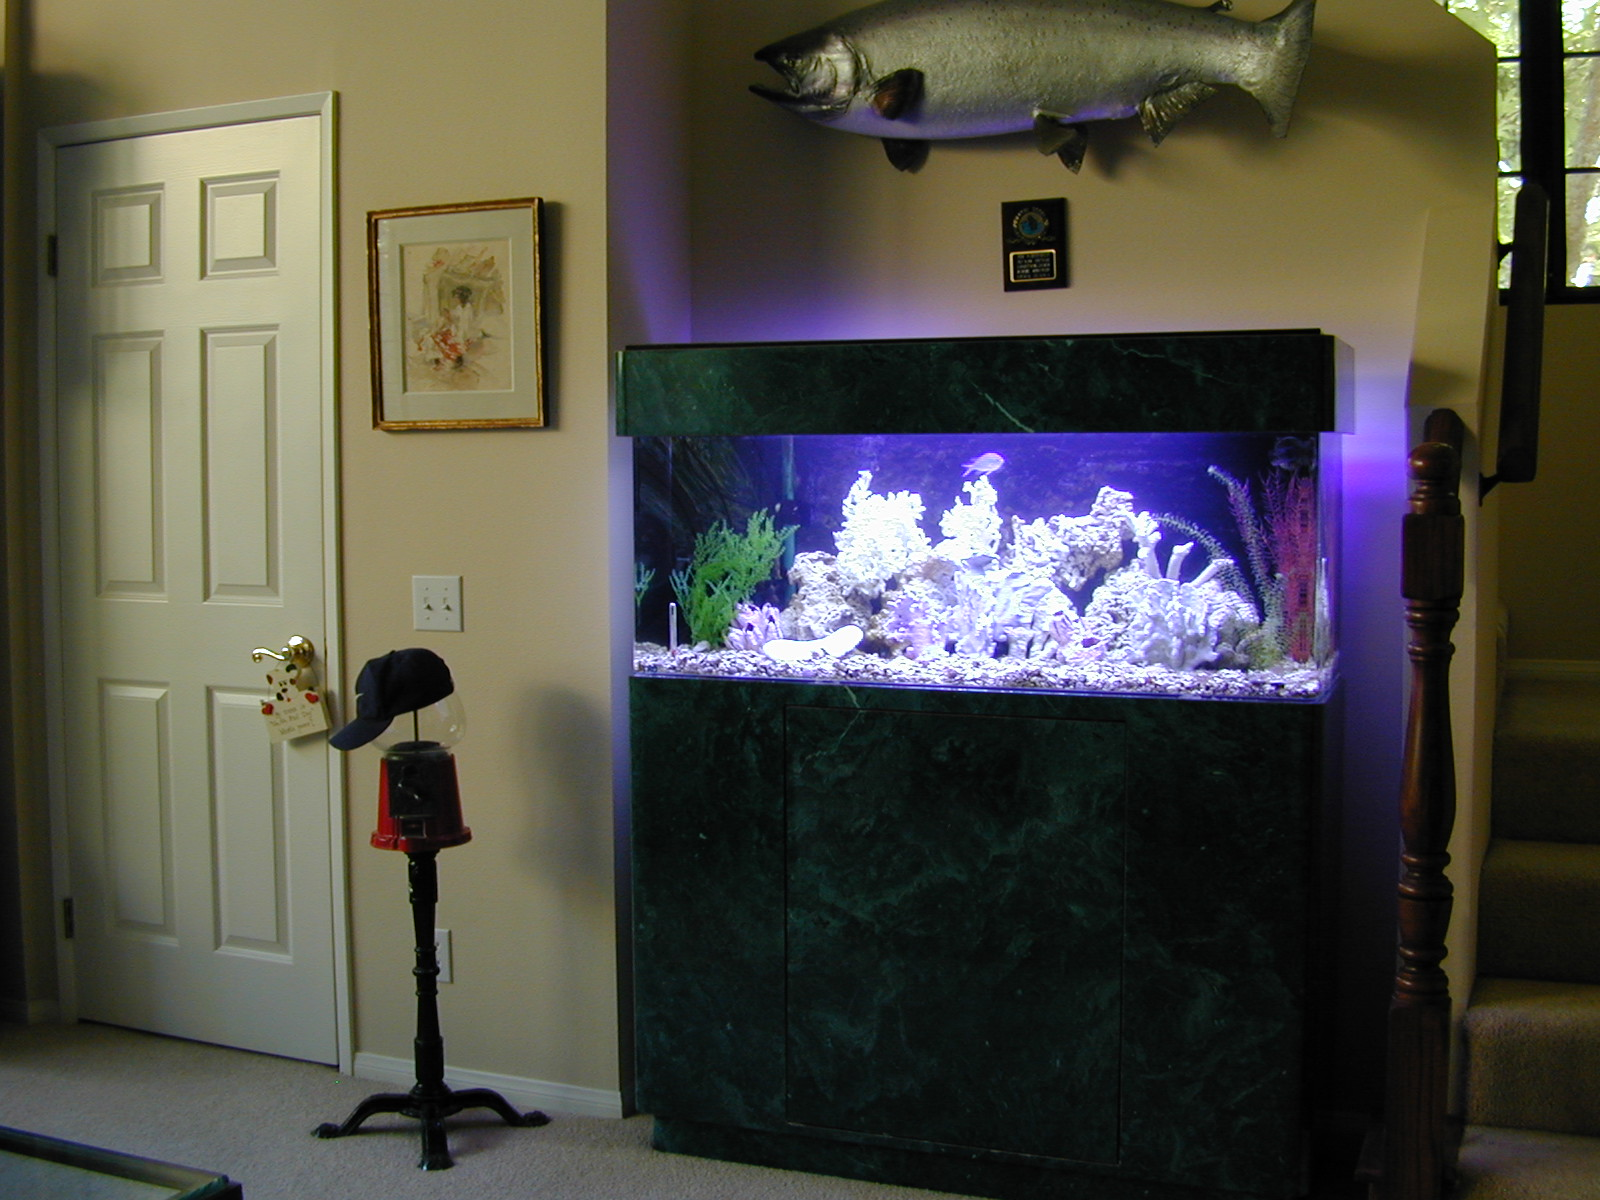 Fish aquarium is good in home - Fish Aquarium Home Design